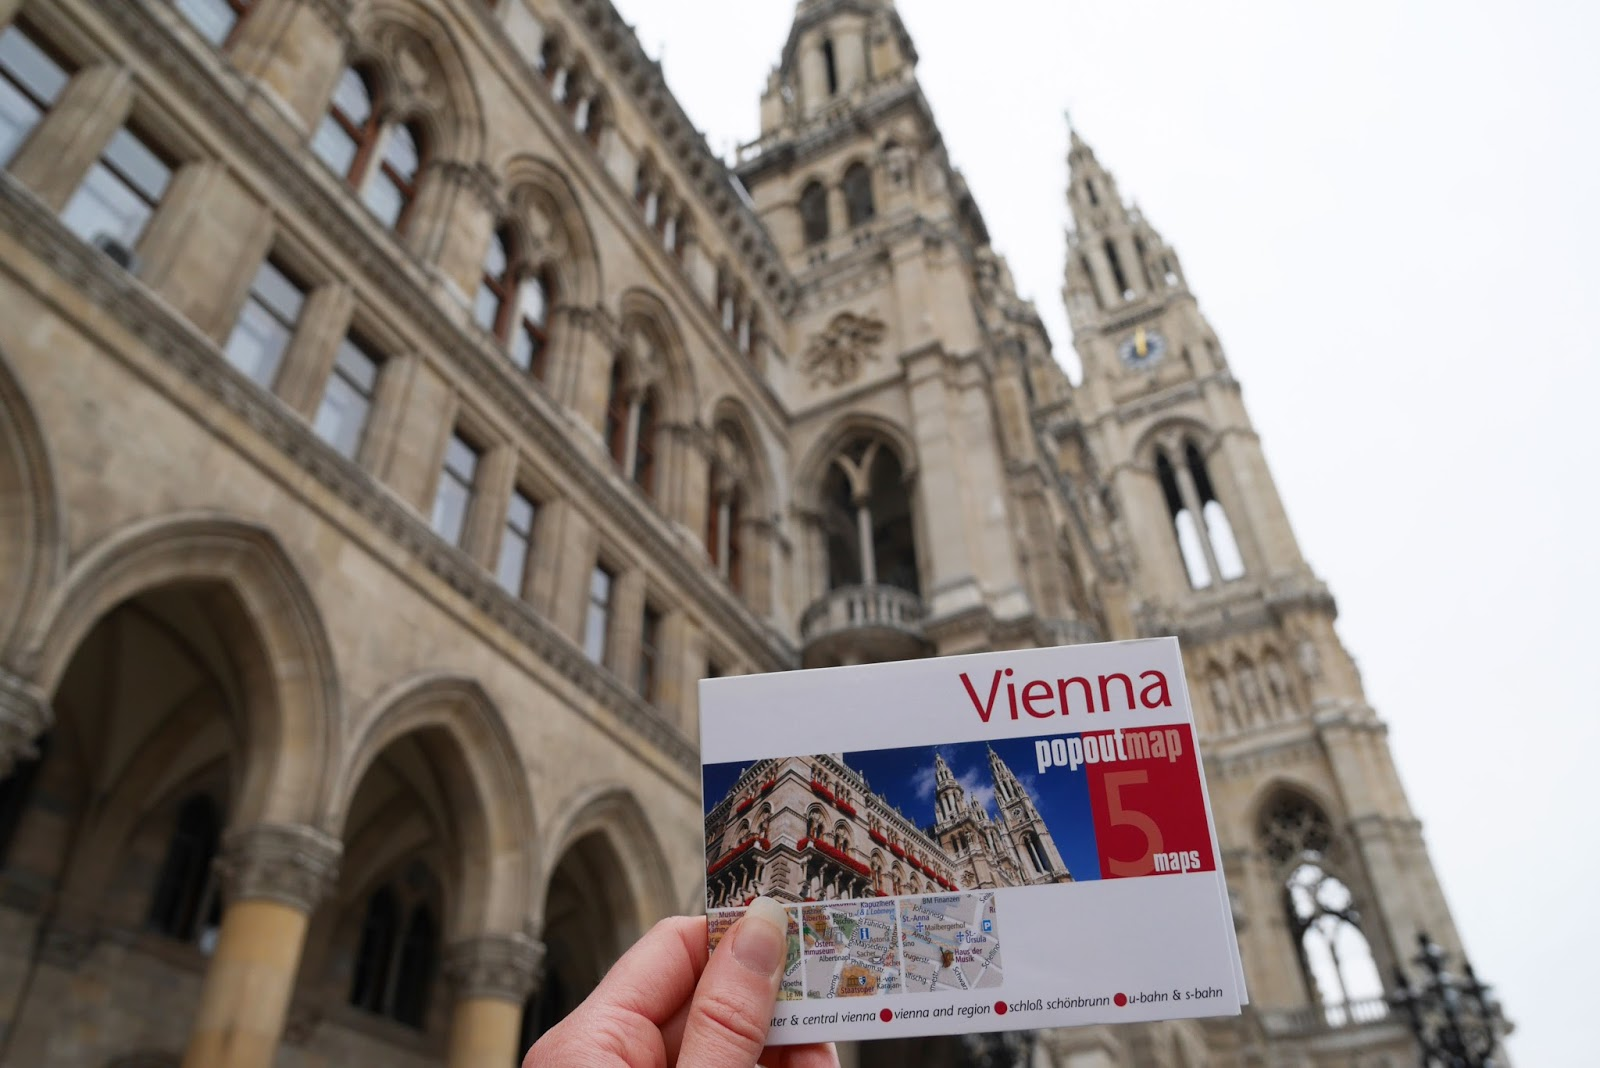 Vienna Popout map outside the Rathaus (City Hall)